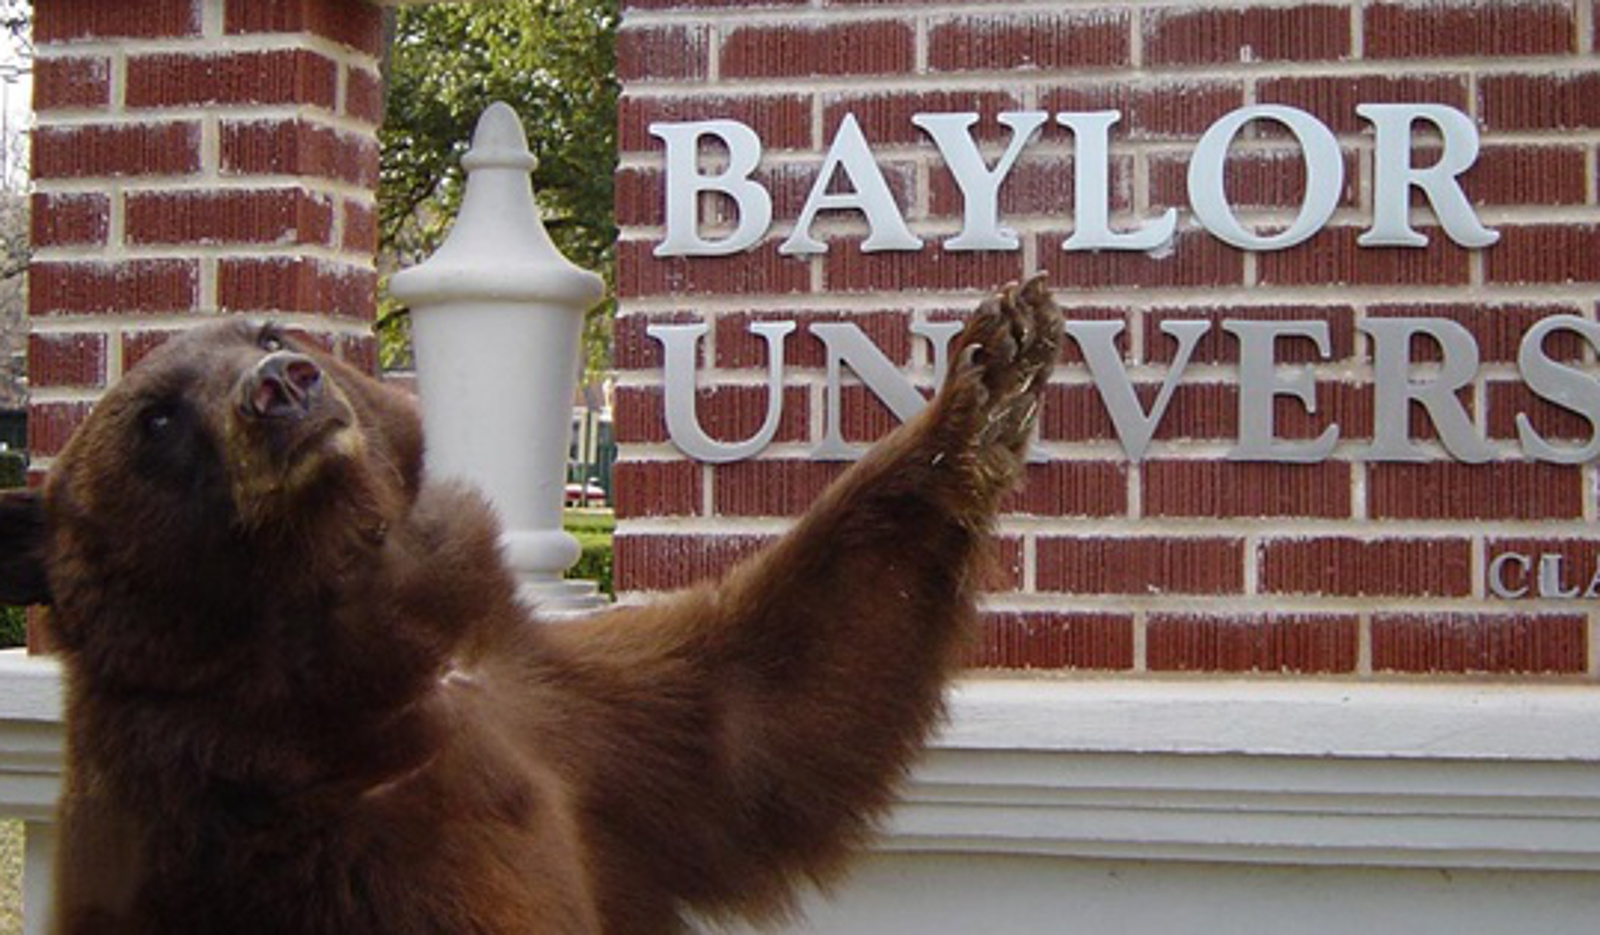 Captive in the Name of Tradition. 3 Live Animal Mascots That Will Make You Rethink College Sports